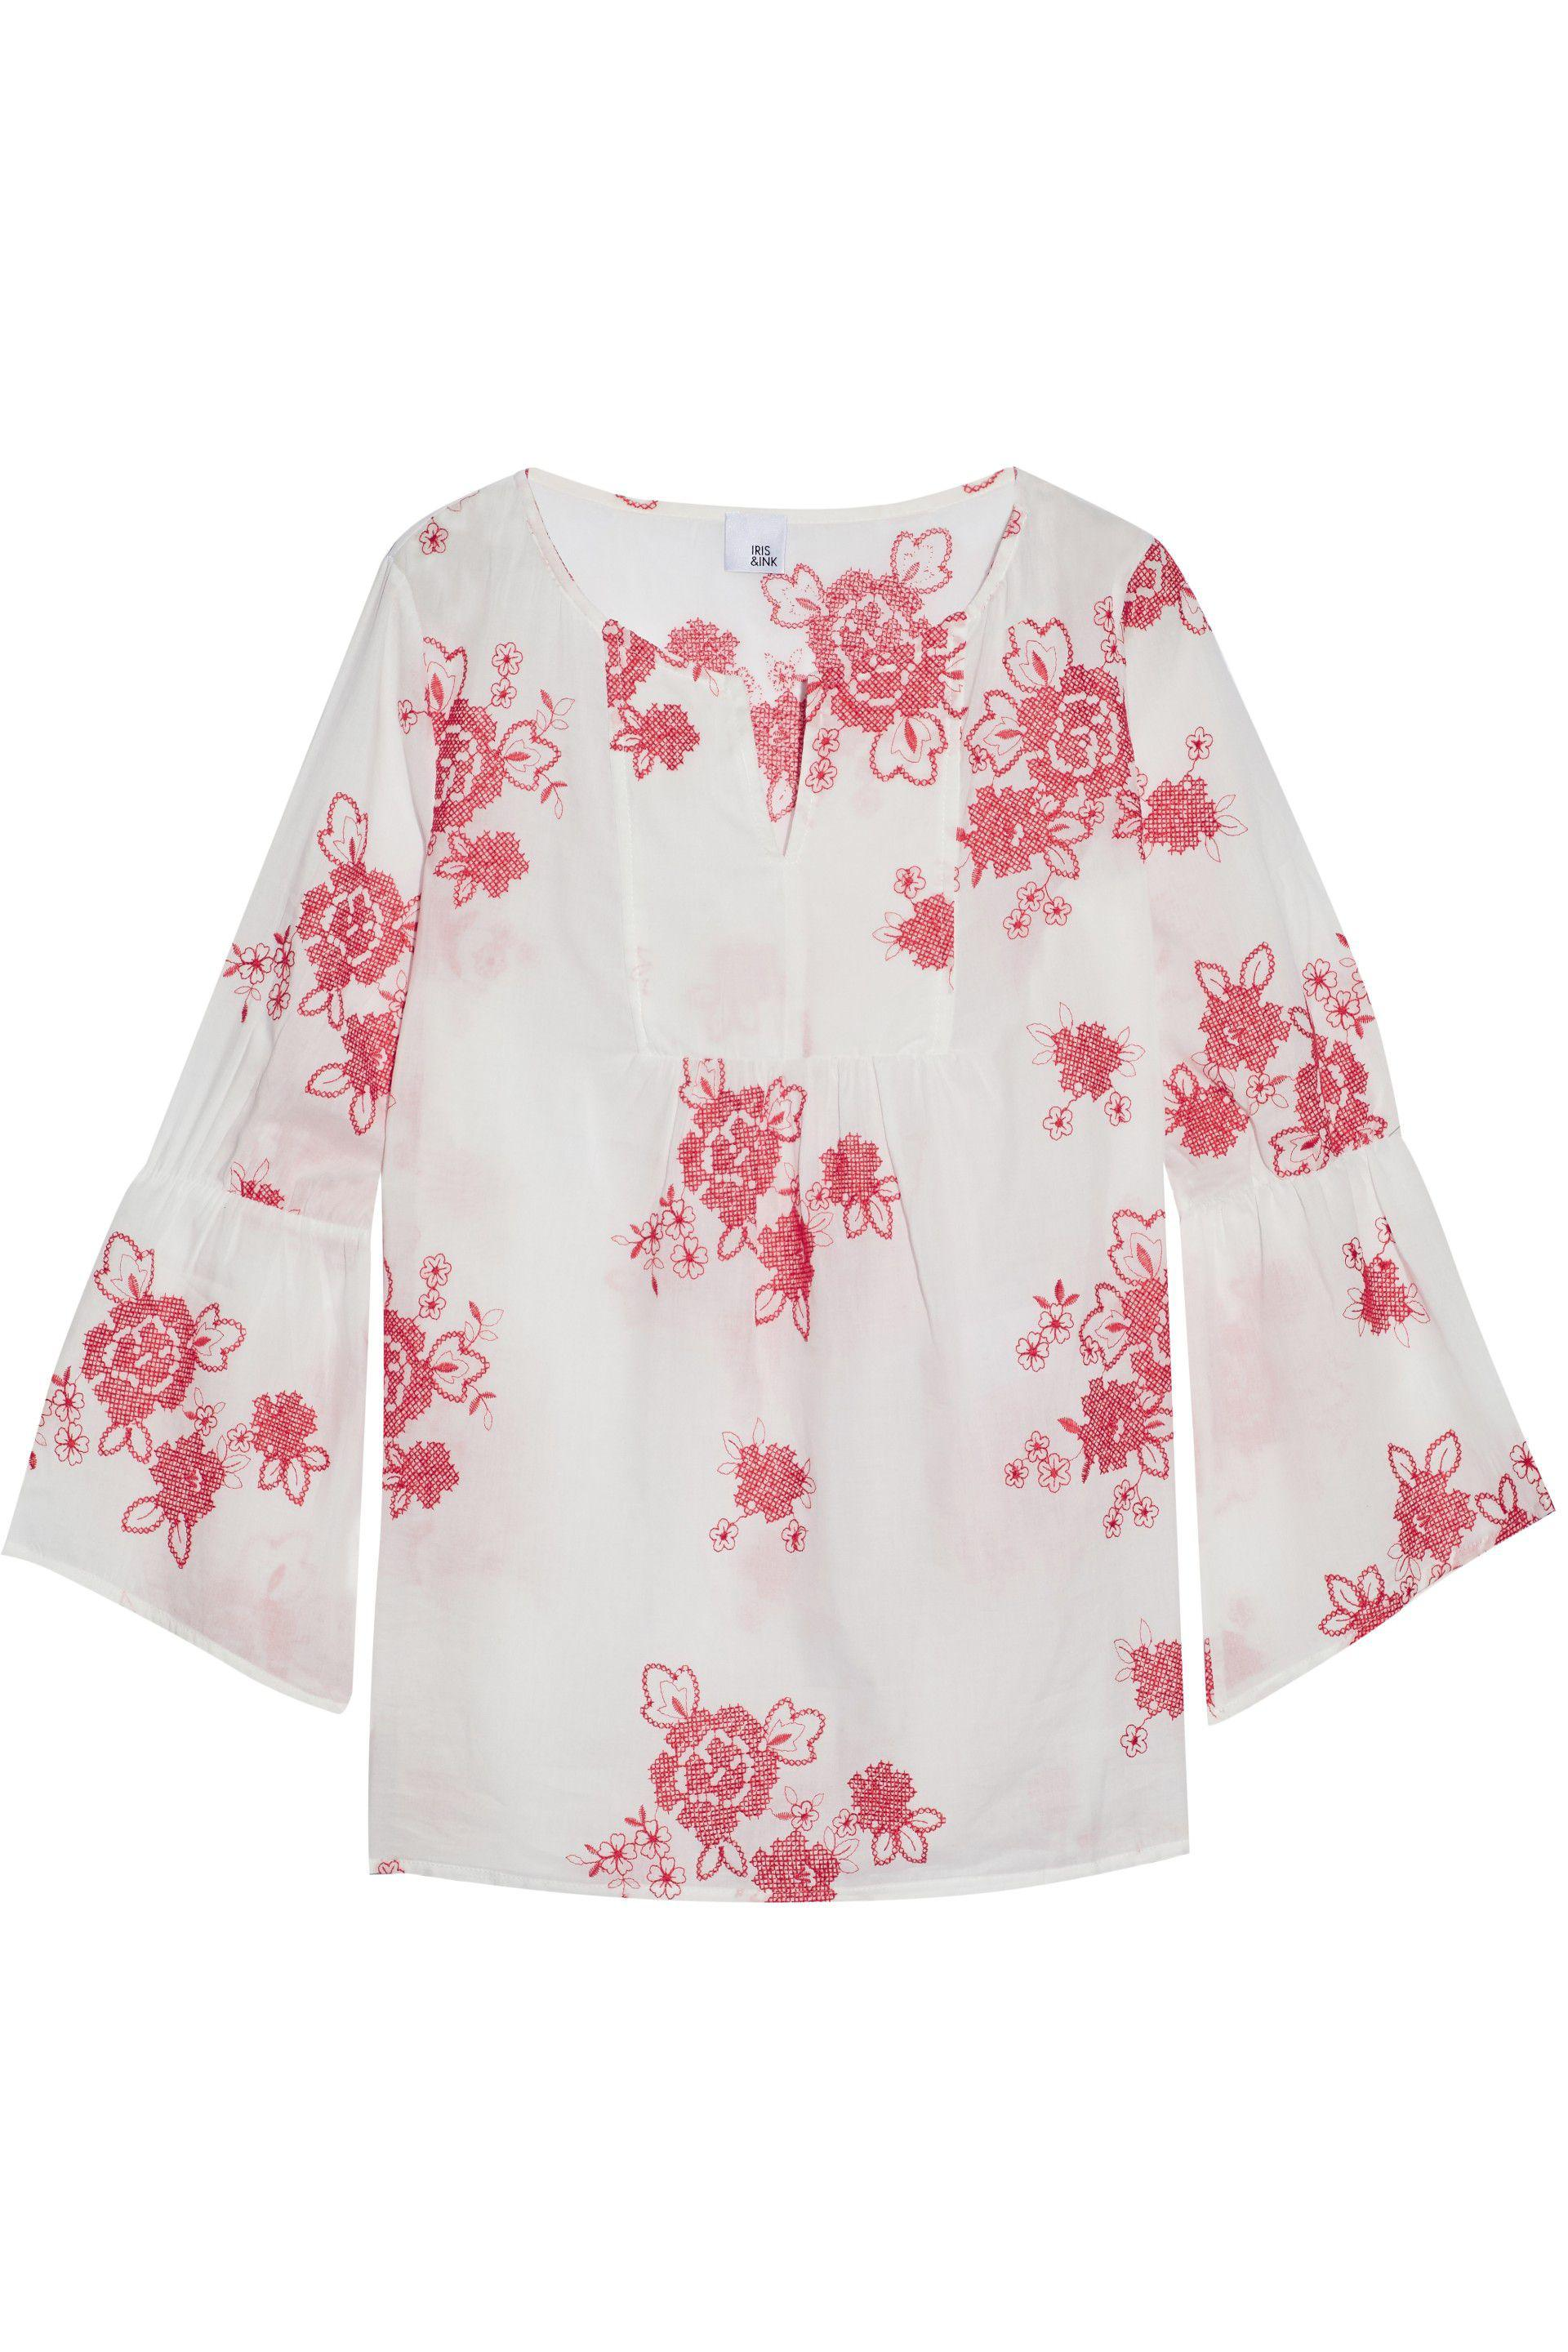 Iris & Ink Woman Gabriel Gathered Embroidered Cotton-gauze Blouse White Size 10 IRIS & INK Cheap Price Wholesale Clearance Official Site TEjiYmZ7